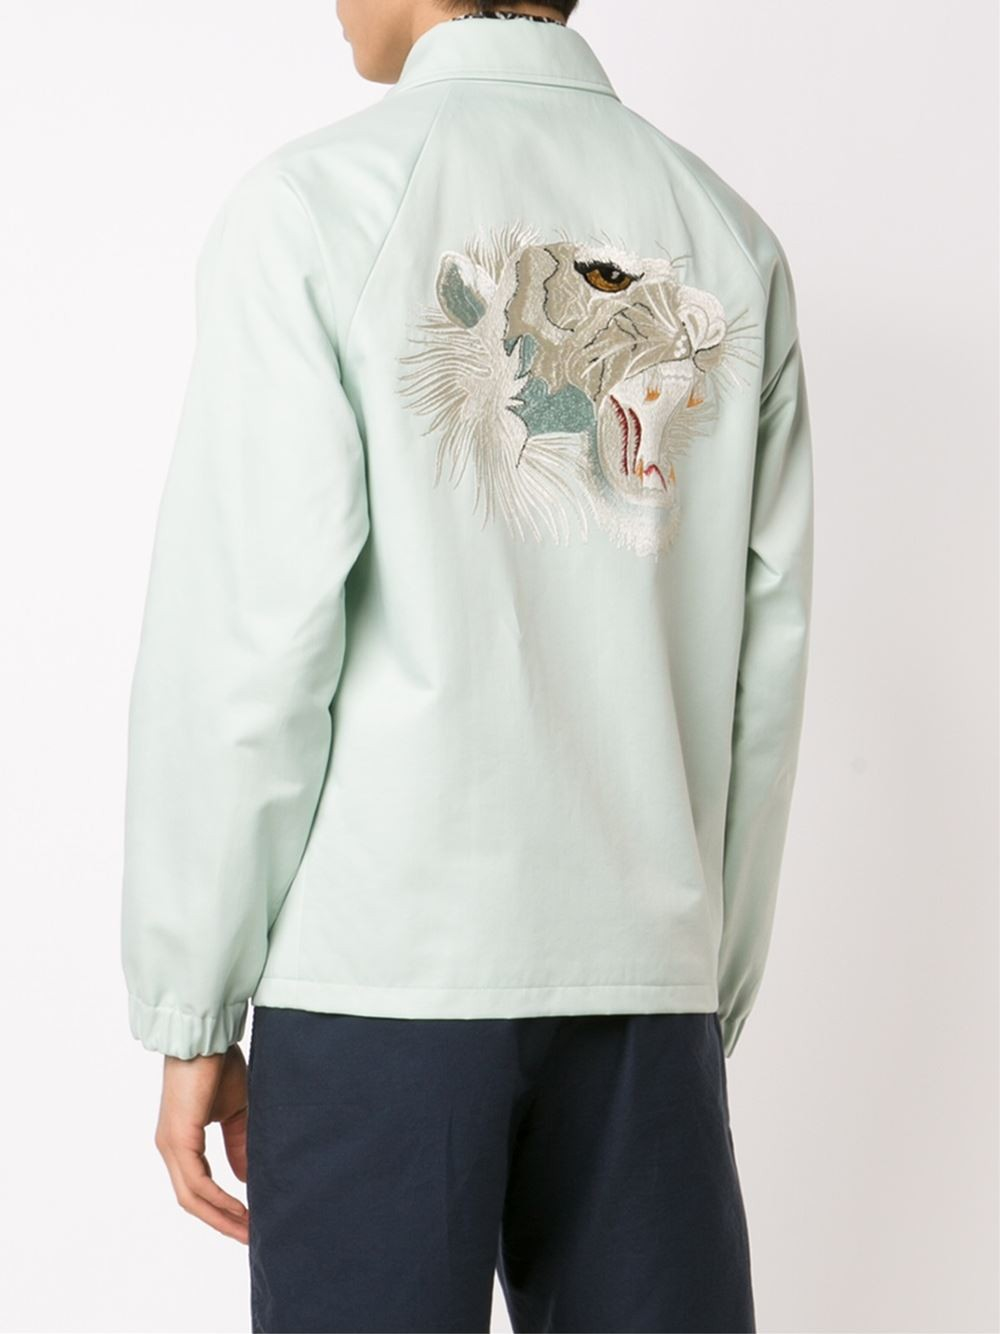 Marc Jacobs Embroidered Back Jacket In White For Men  Lyst